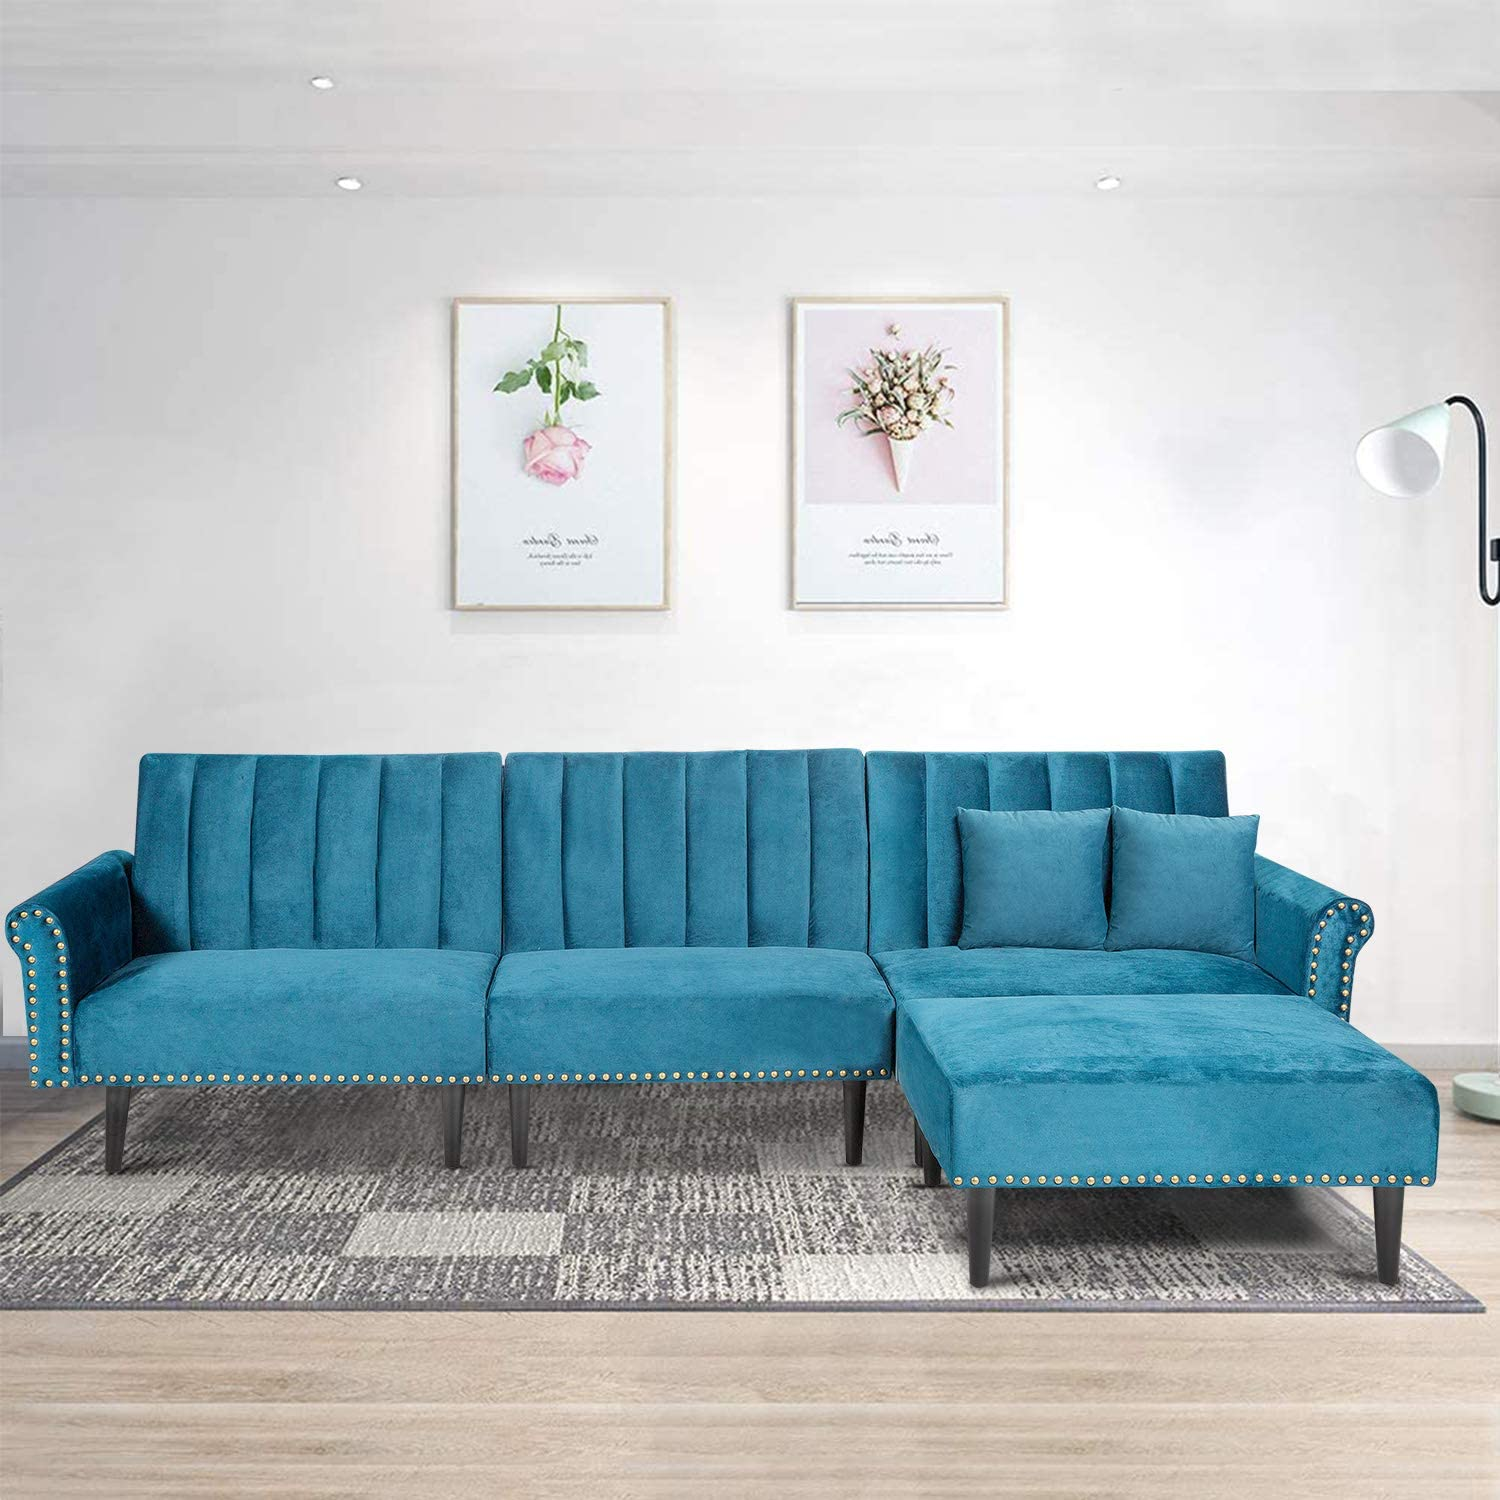 Recaceik Convertible Sectional Sofa, Modern Velvet Fabric Classic Upholstered Couches 4-Seater with Super Soft Cushion Futon Sofa Bed for Living Room(Light Blue)